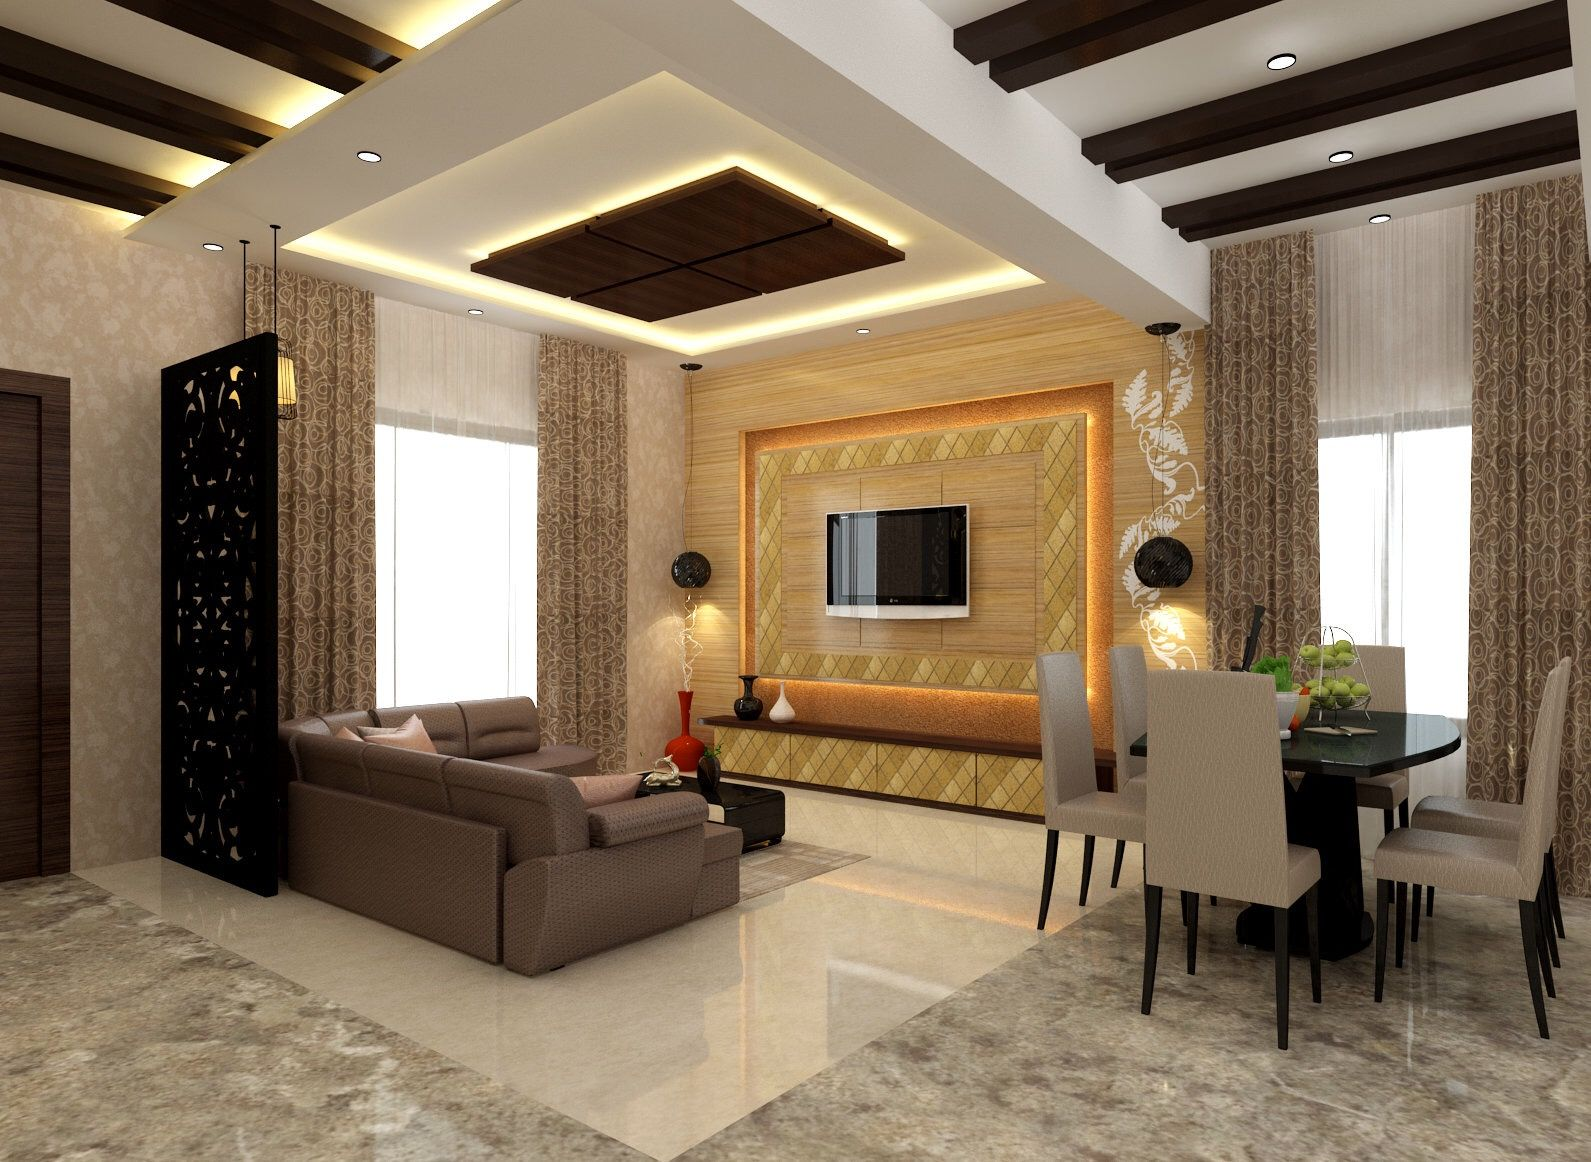 Living Room Luxury Style With Dinning Area Interior Design Living Room Ceiling Design Living Room Living Room Design Modern